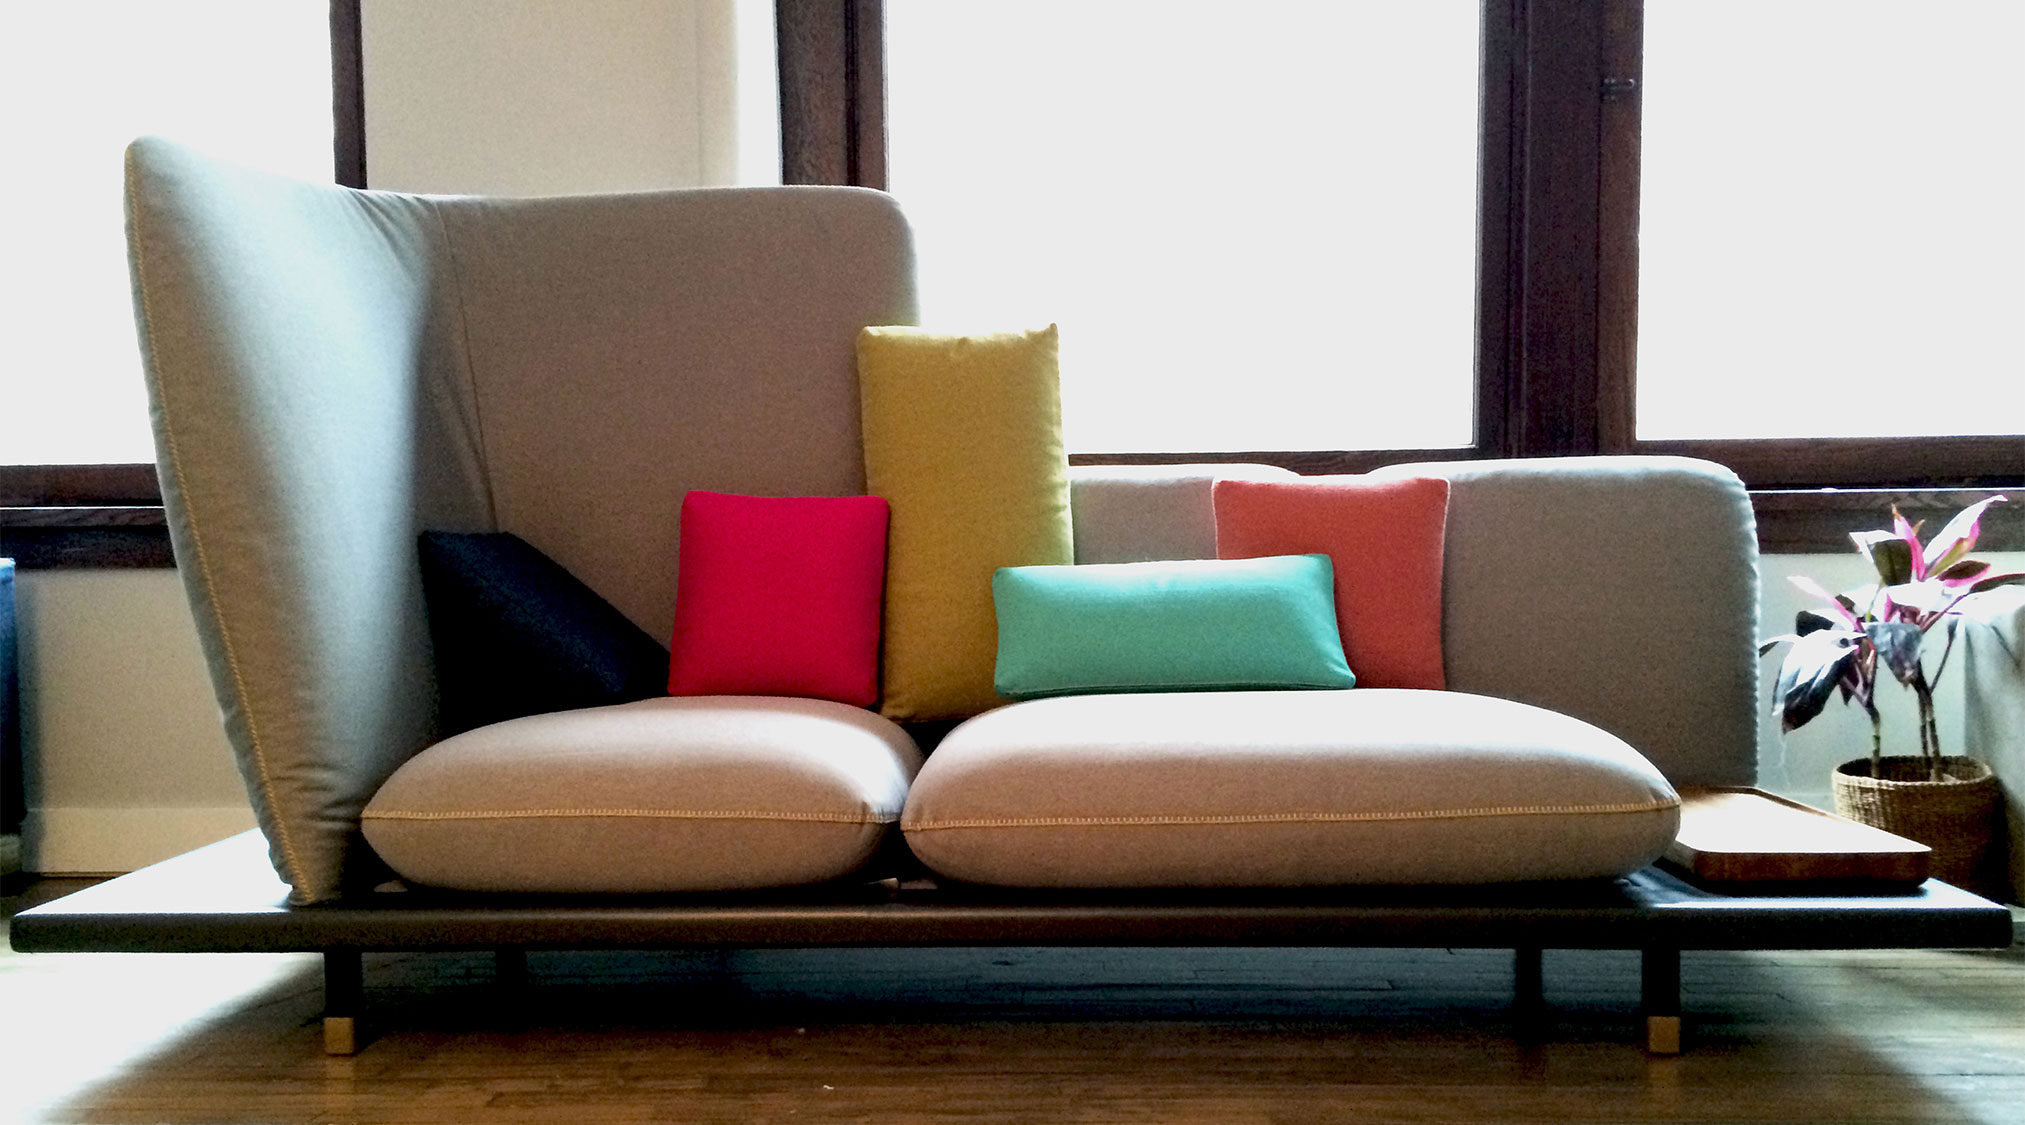 prototipo sofa4manhattan